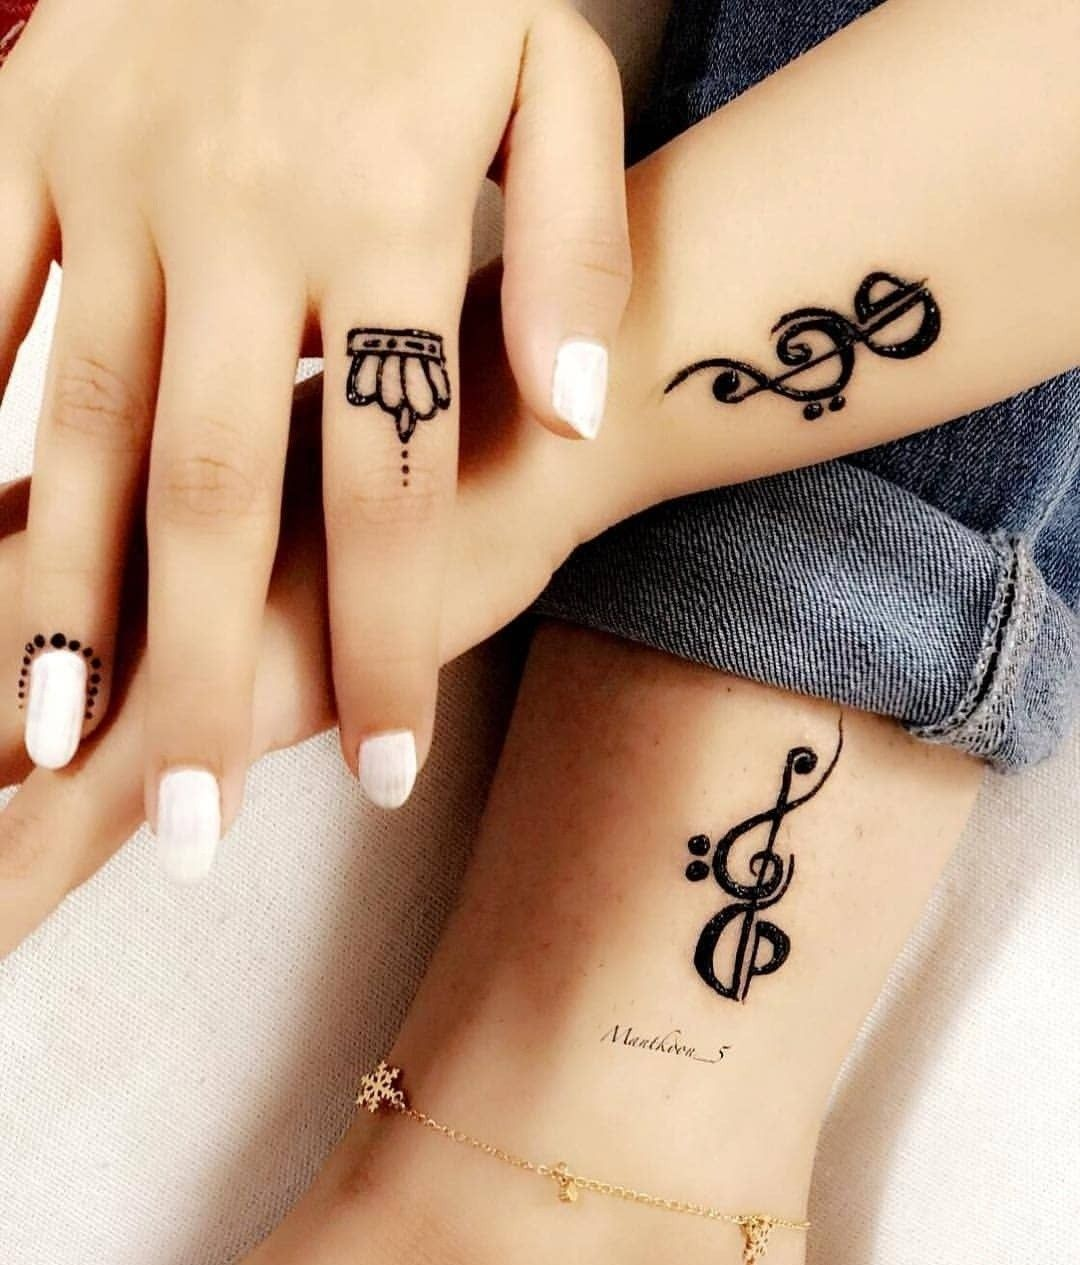 Pin By Eman Adly On Unique Mehndi Designs And Tattoos In 2020 Henna Tattoo Designs Simple Simple Henna Tattoo Henna Tattoo Designs